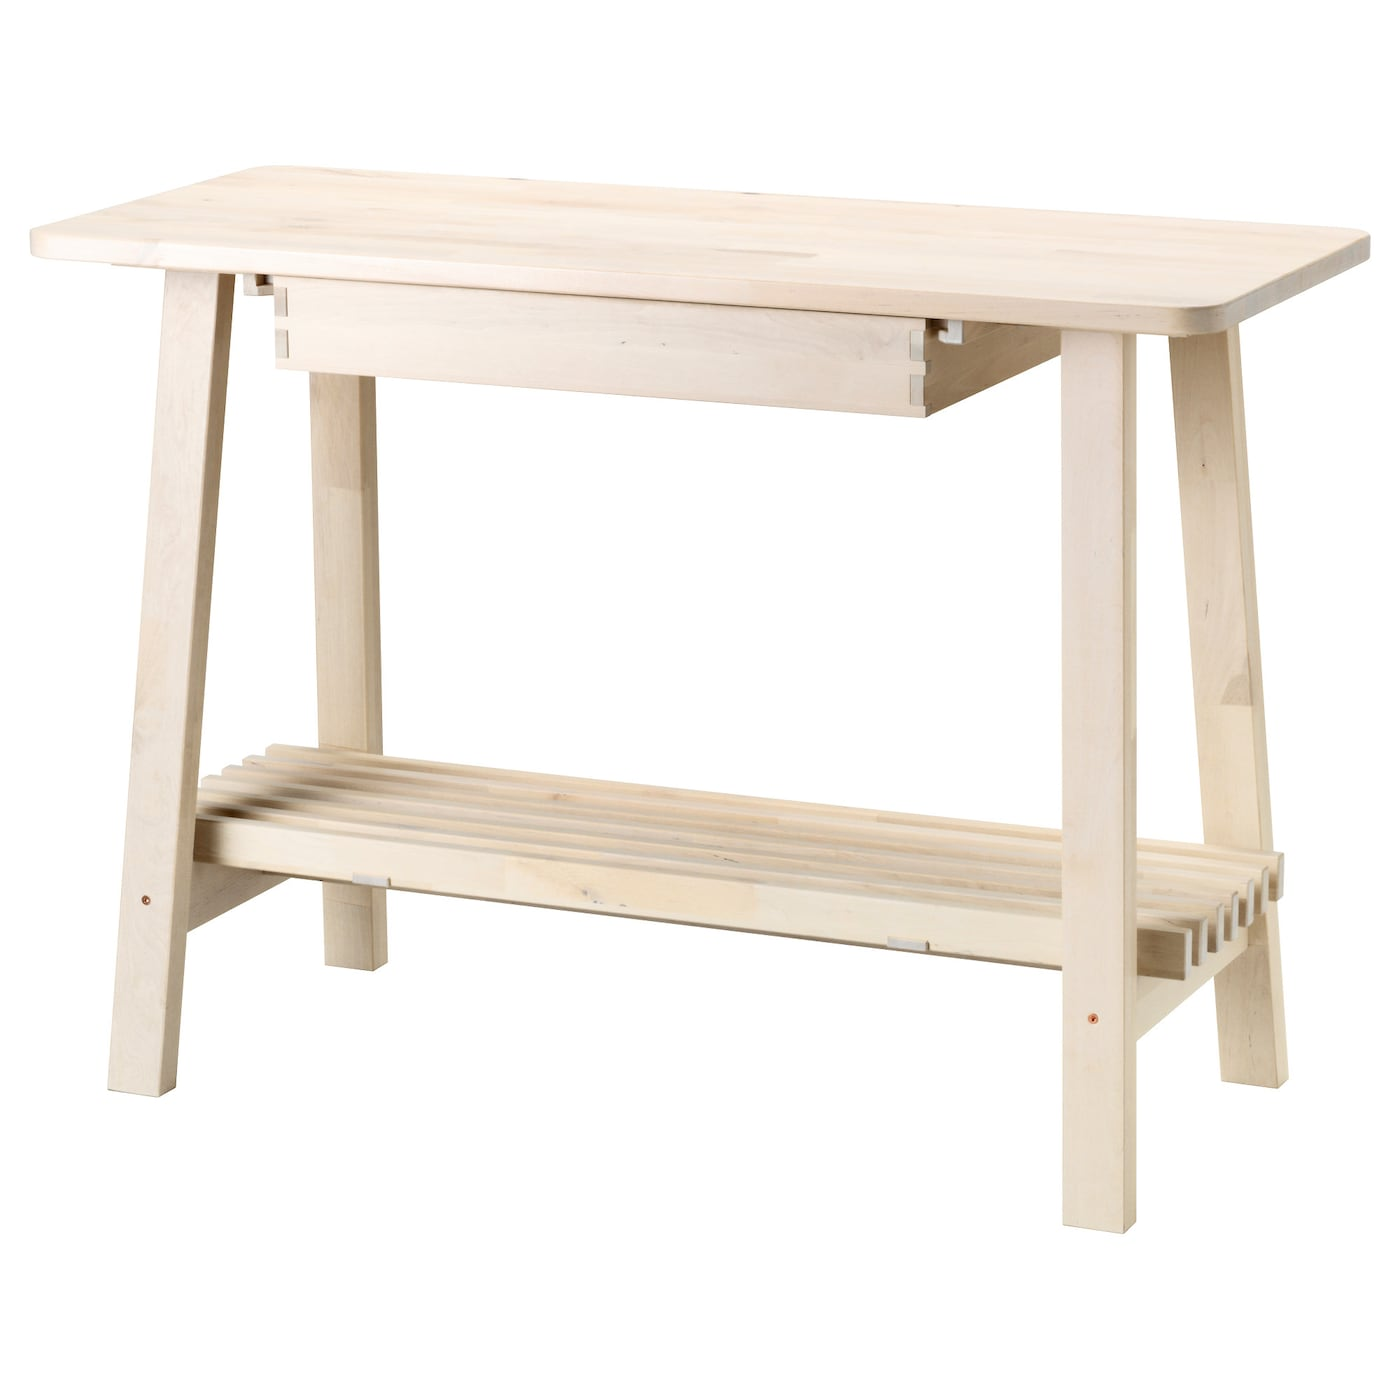 Norr ker table d 39 appoint blanc bouleau 120x50 cm ikea - Table d appoint ikea ...